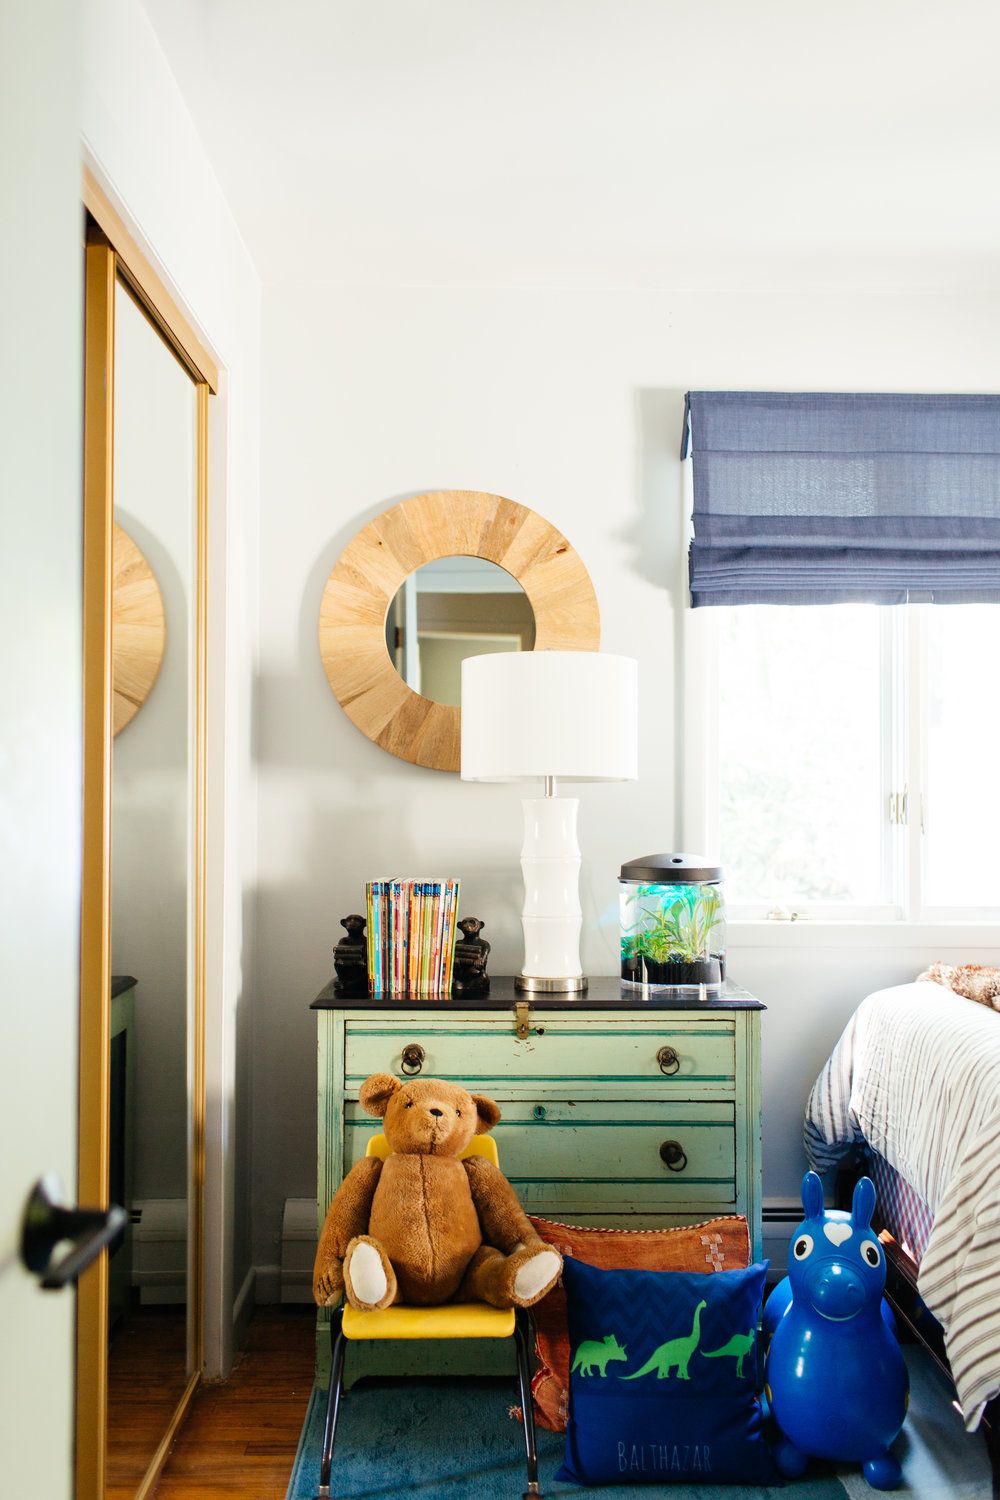 Kids collected eclectic bedroom by the rath project